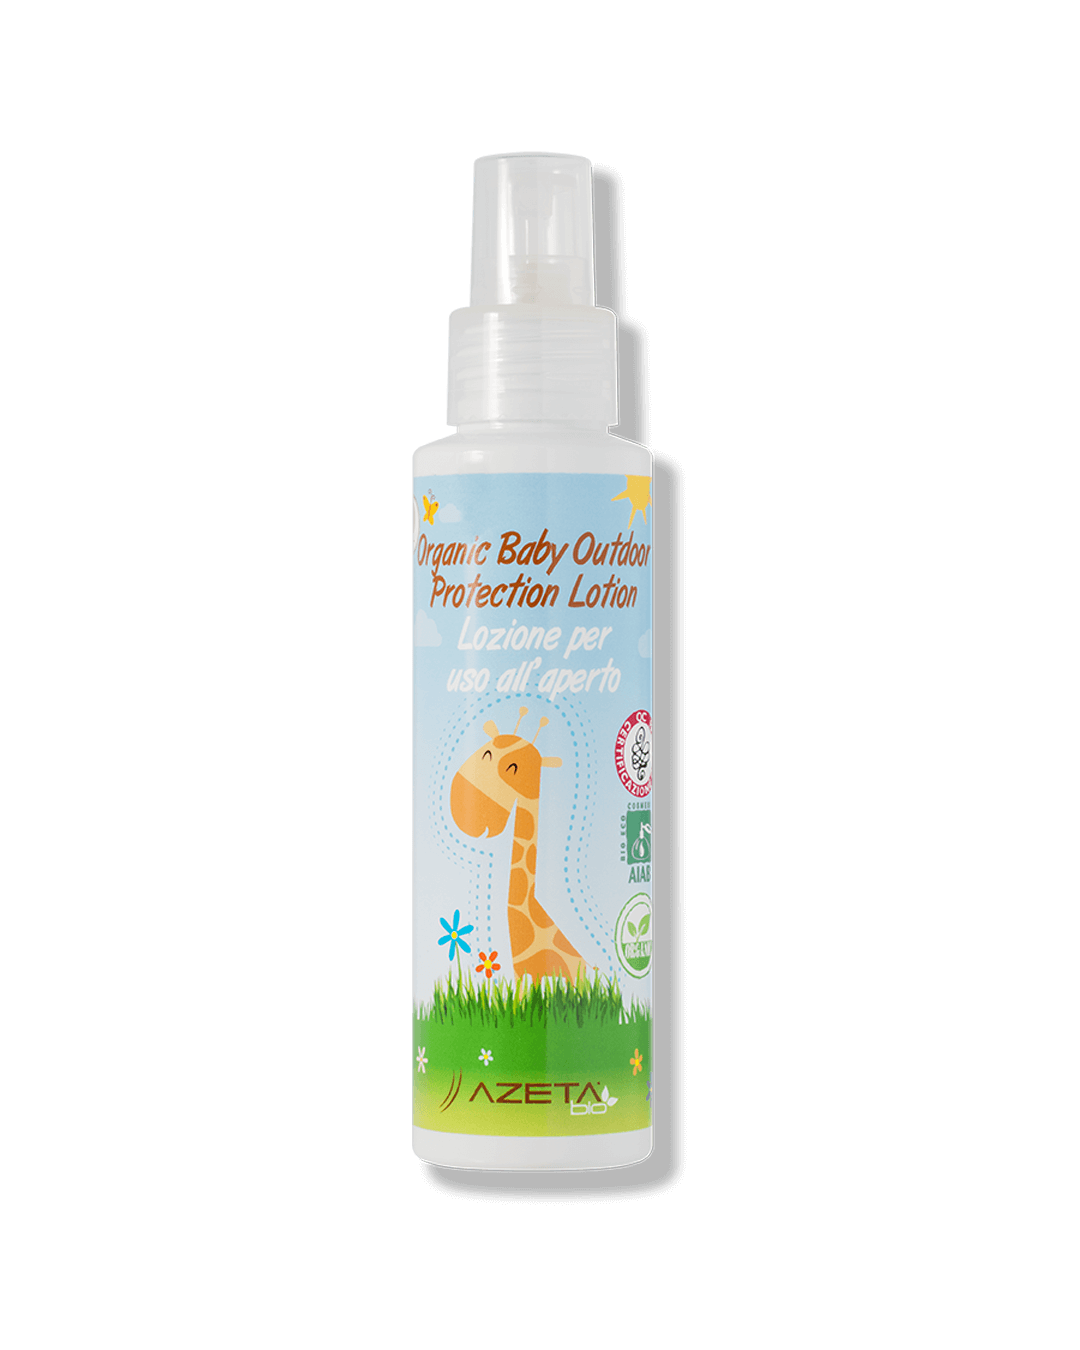 Organic Baby Outdoor Protection Lotion